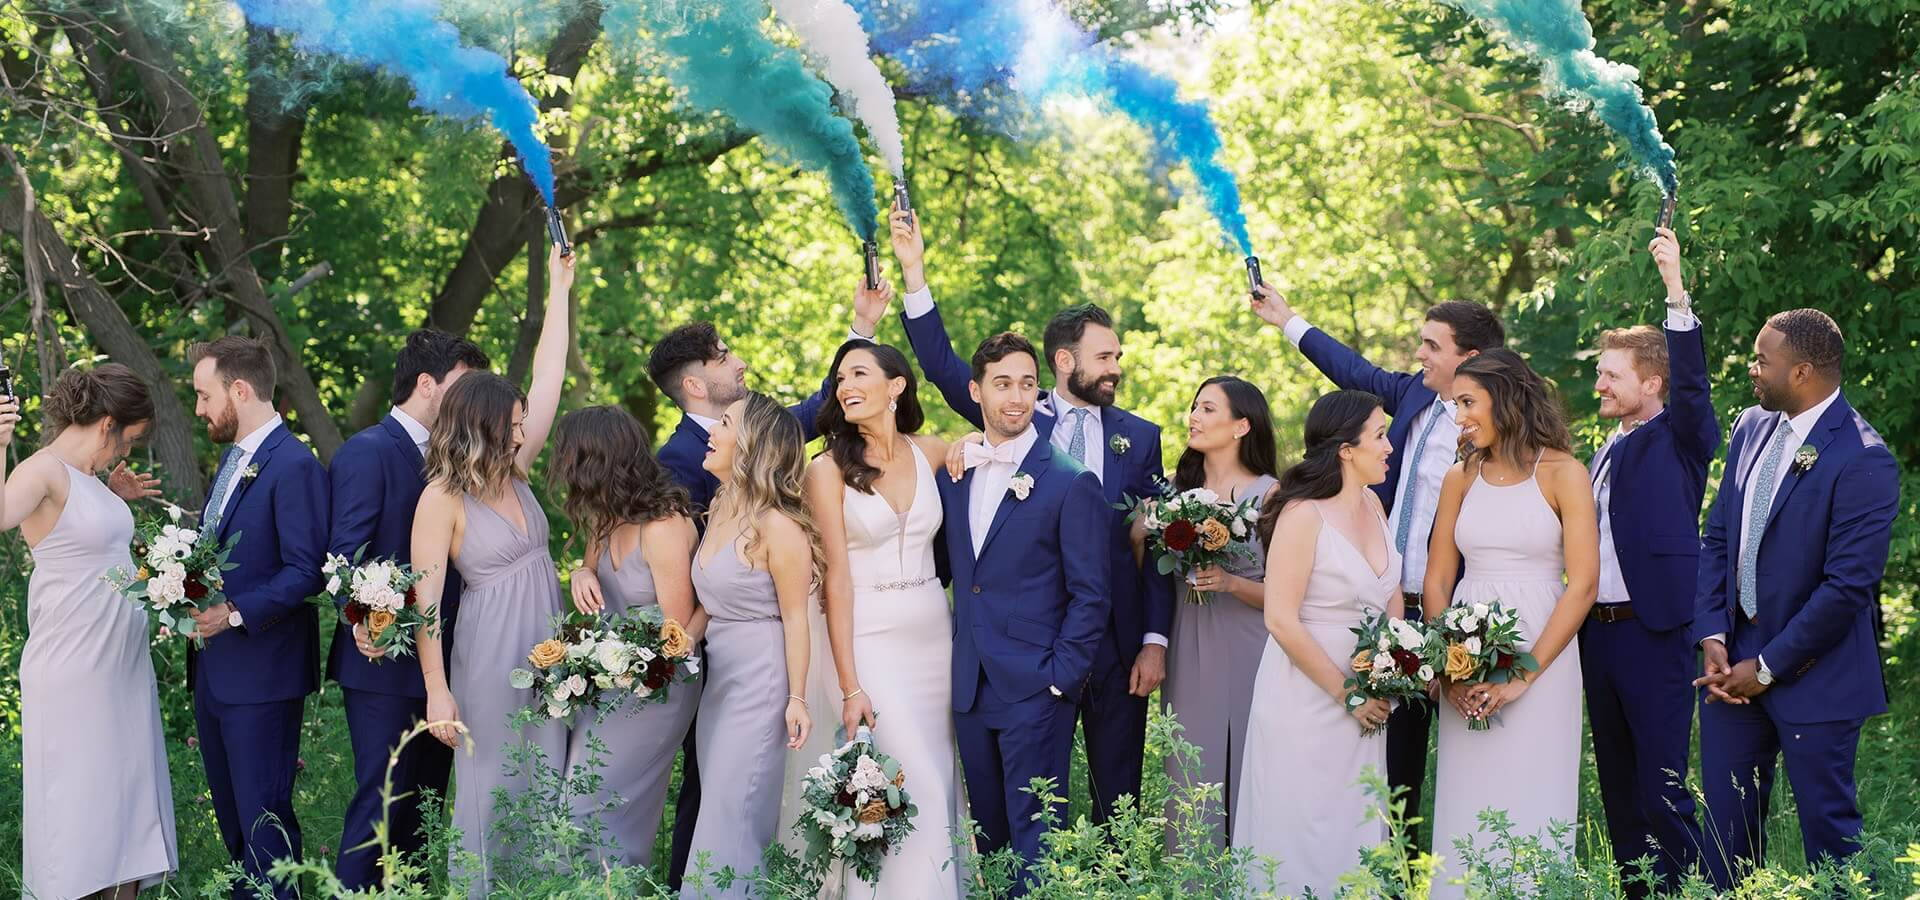 Hero image for Kayla and Mike's Blue-and-White Wedding at the Symes